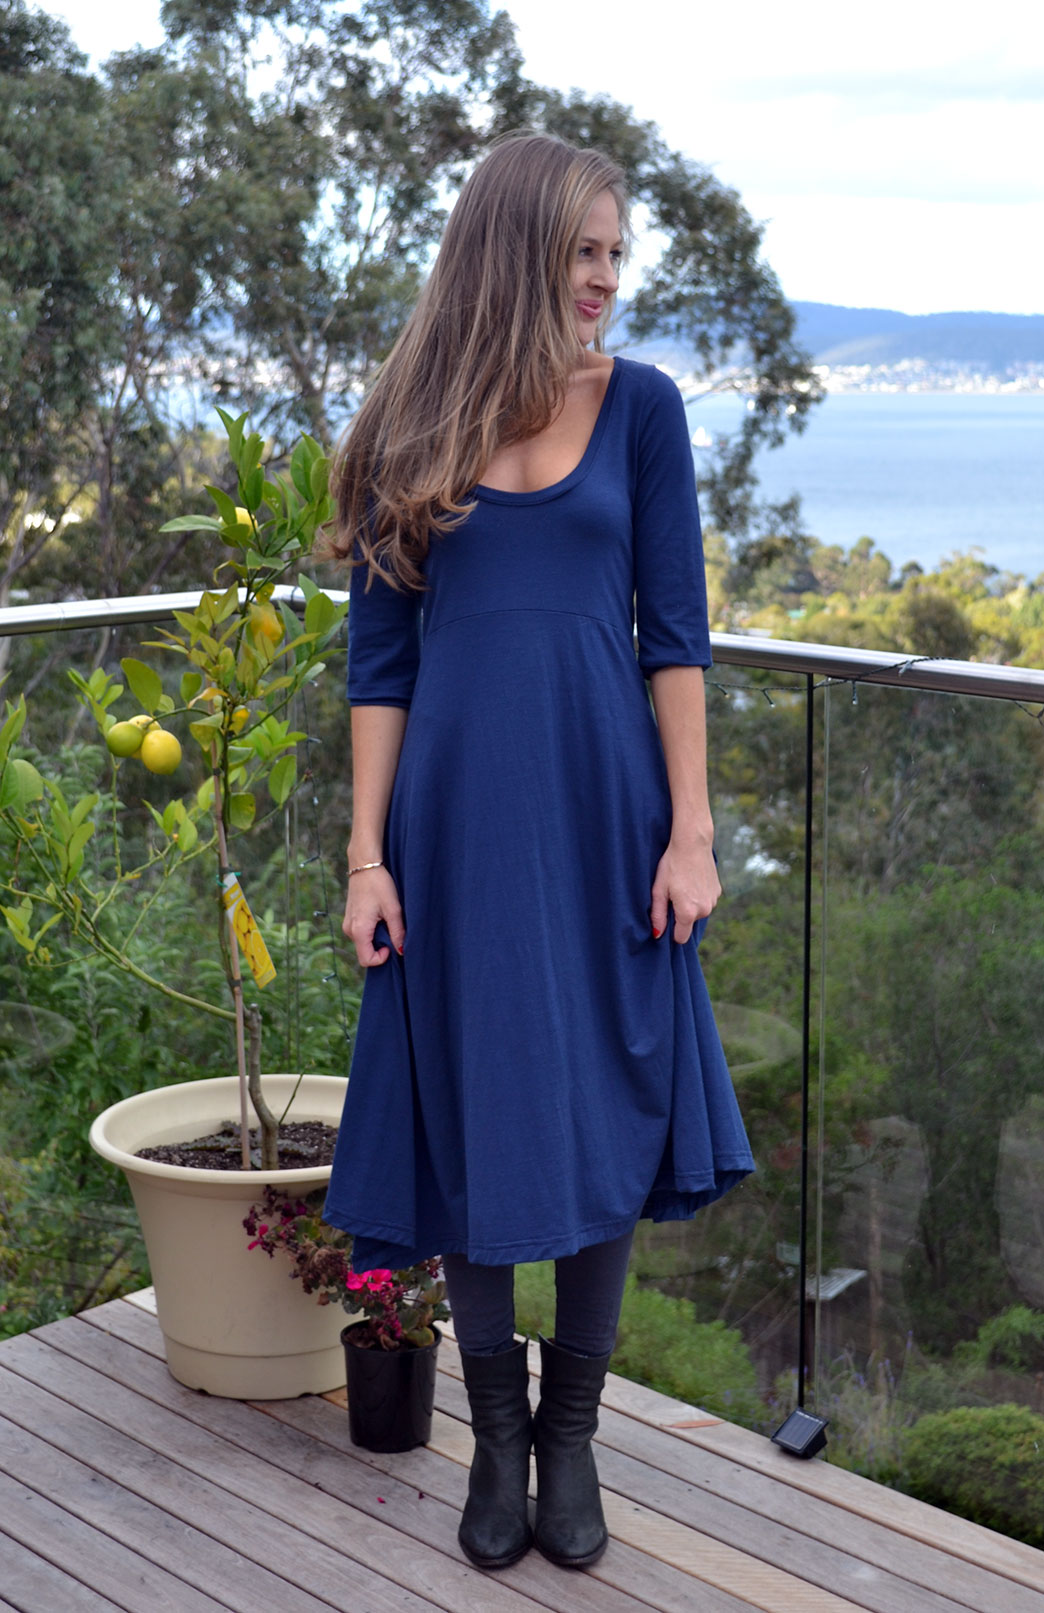 Milly Dress - Women's Indigo Blue Merino Wool Milly Dress with Curved Hem - Smitten Merino Tasmania Australia